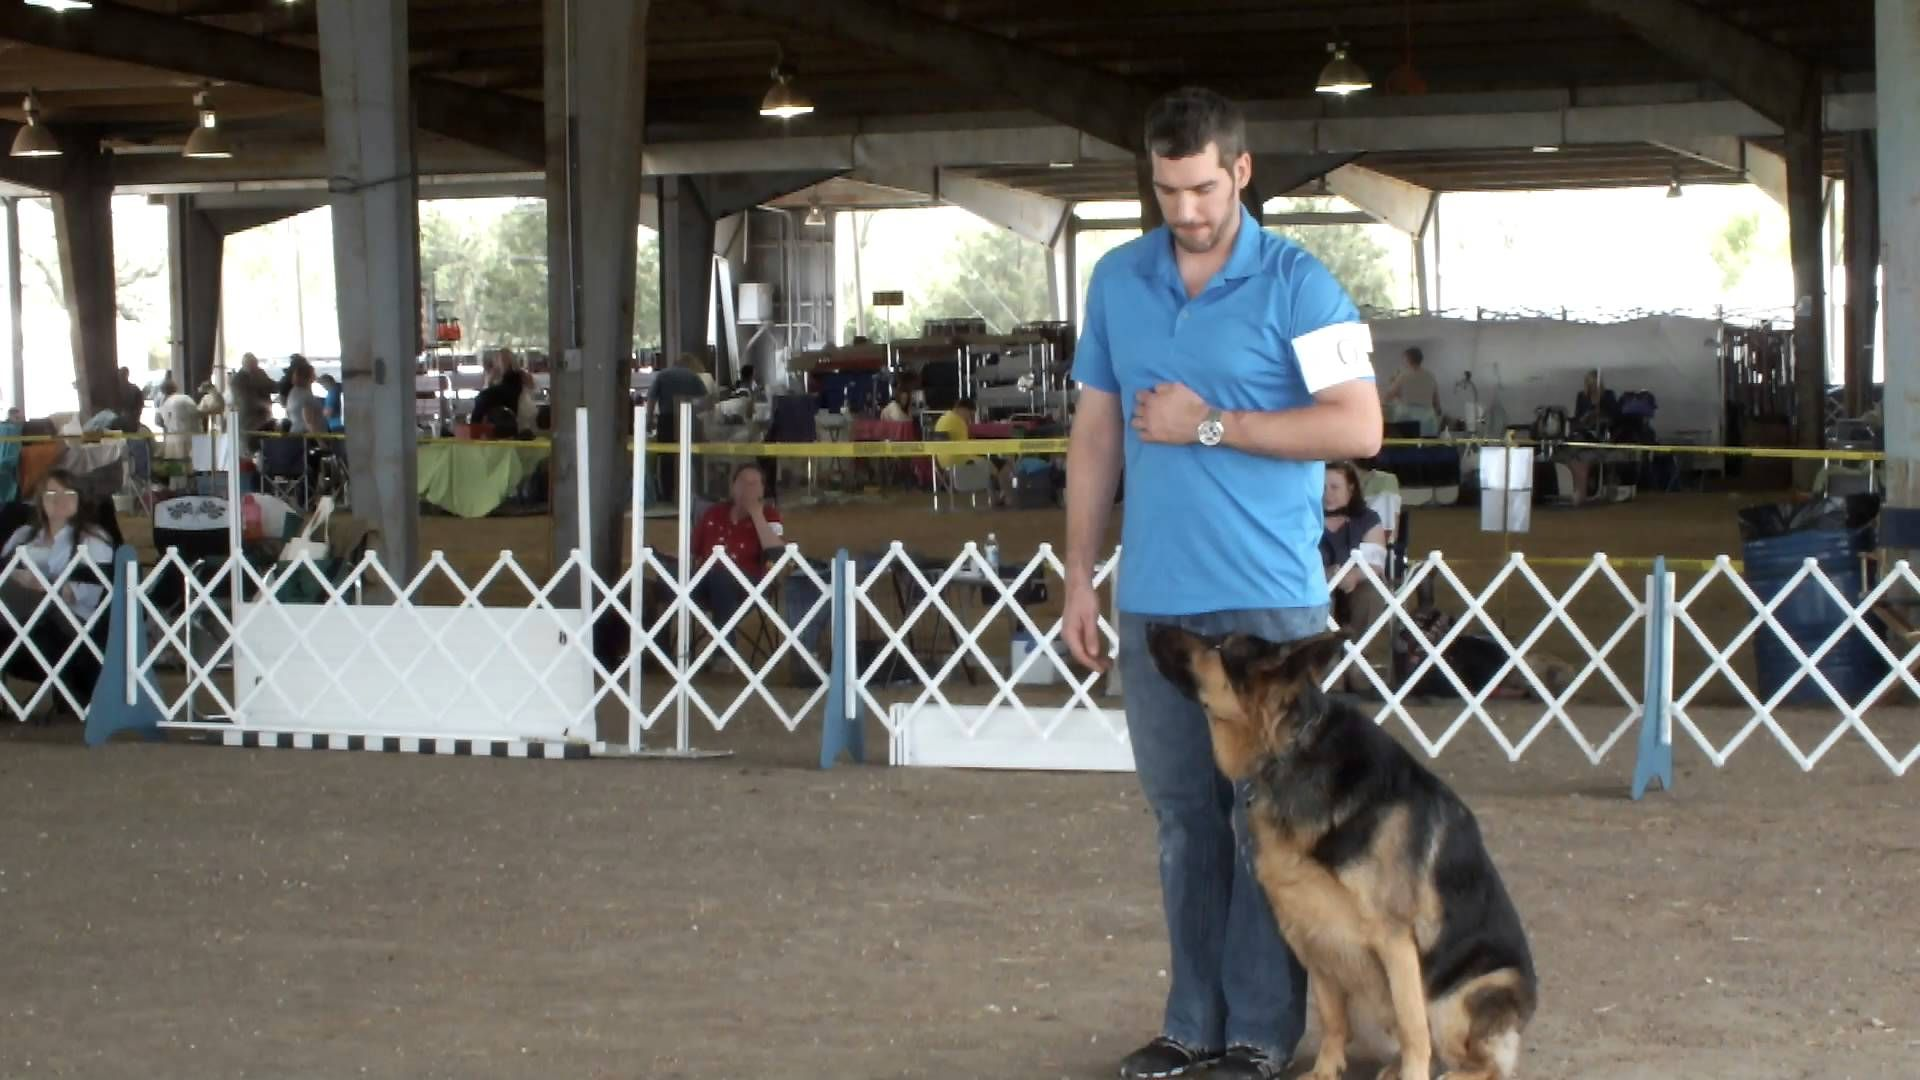 Club Canine Houston Obedience School For Dogs Dog Training